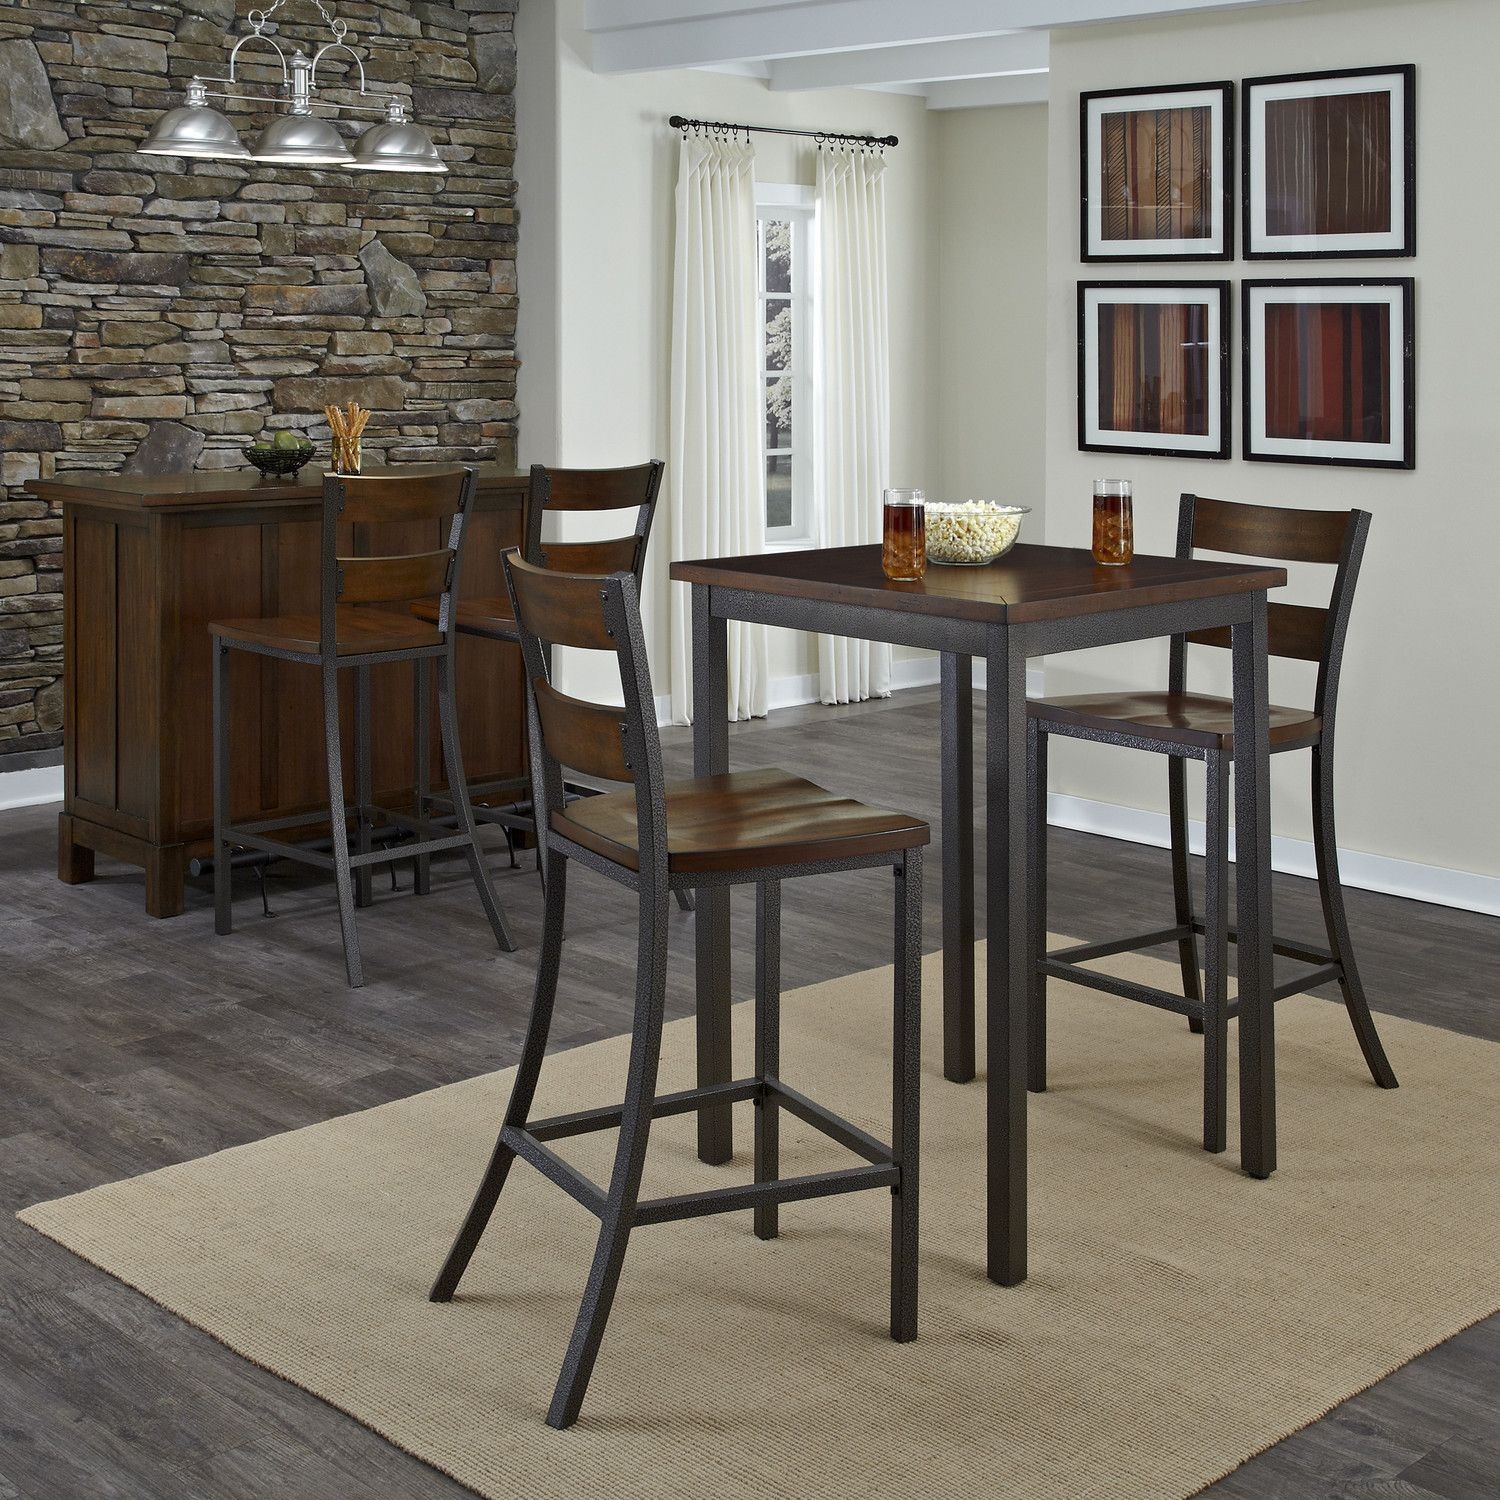 Charmant Home Styles Cabin Creek Bistro Table Set With Stools And Dining Home And  Patio Decor Center